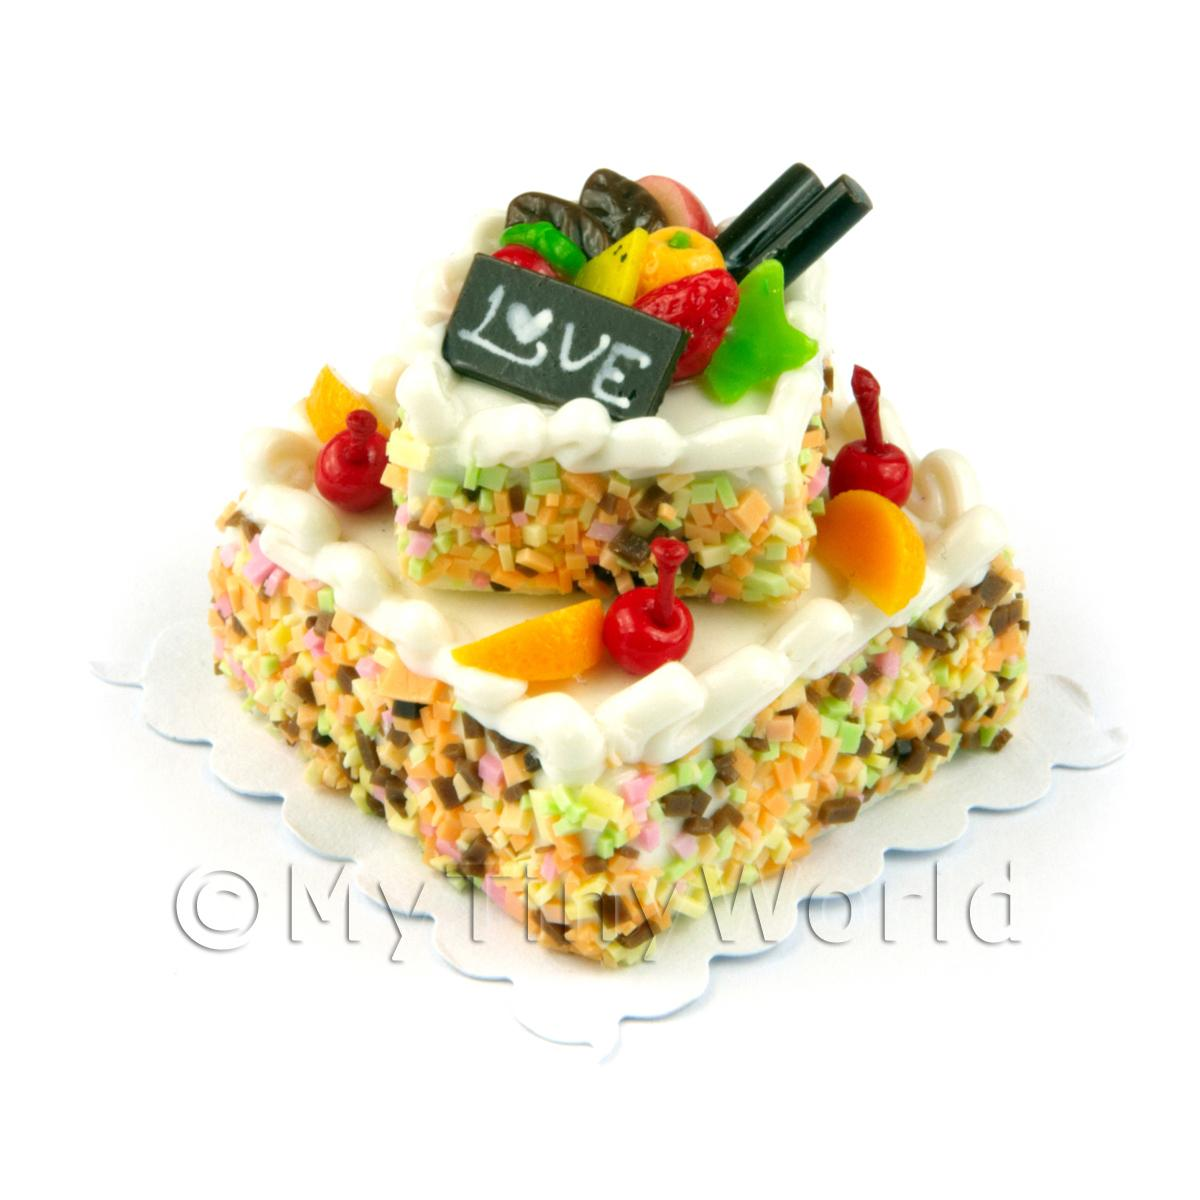 Miniature Large Handmade Two Tier White Iced Fruit Cake